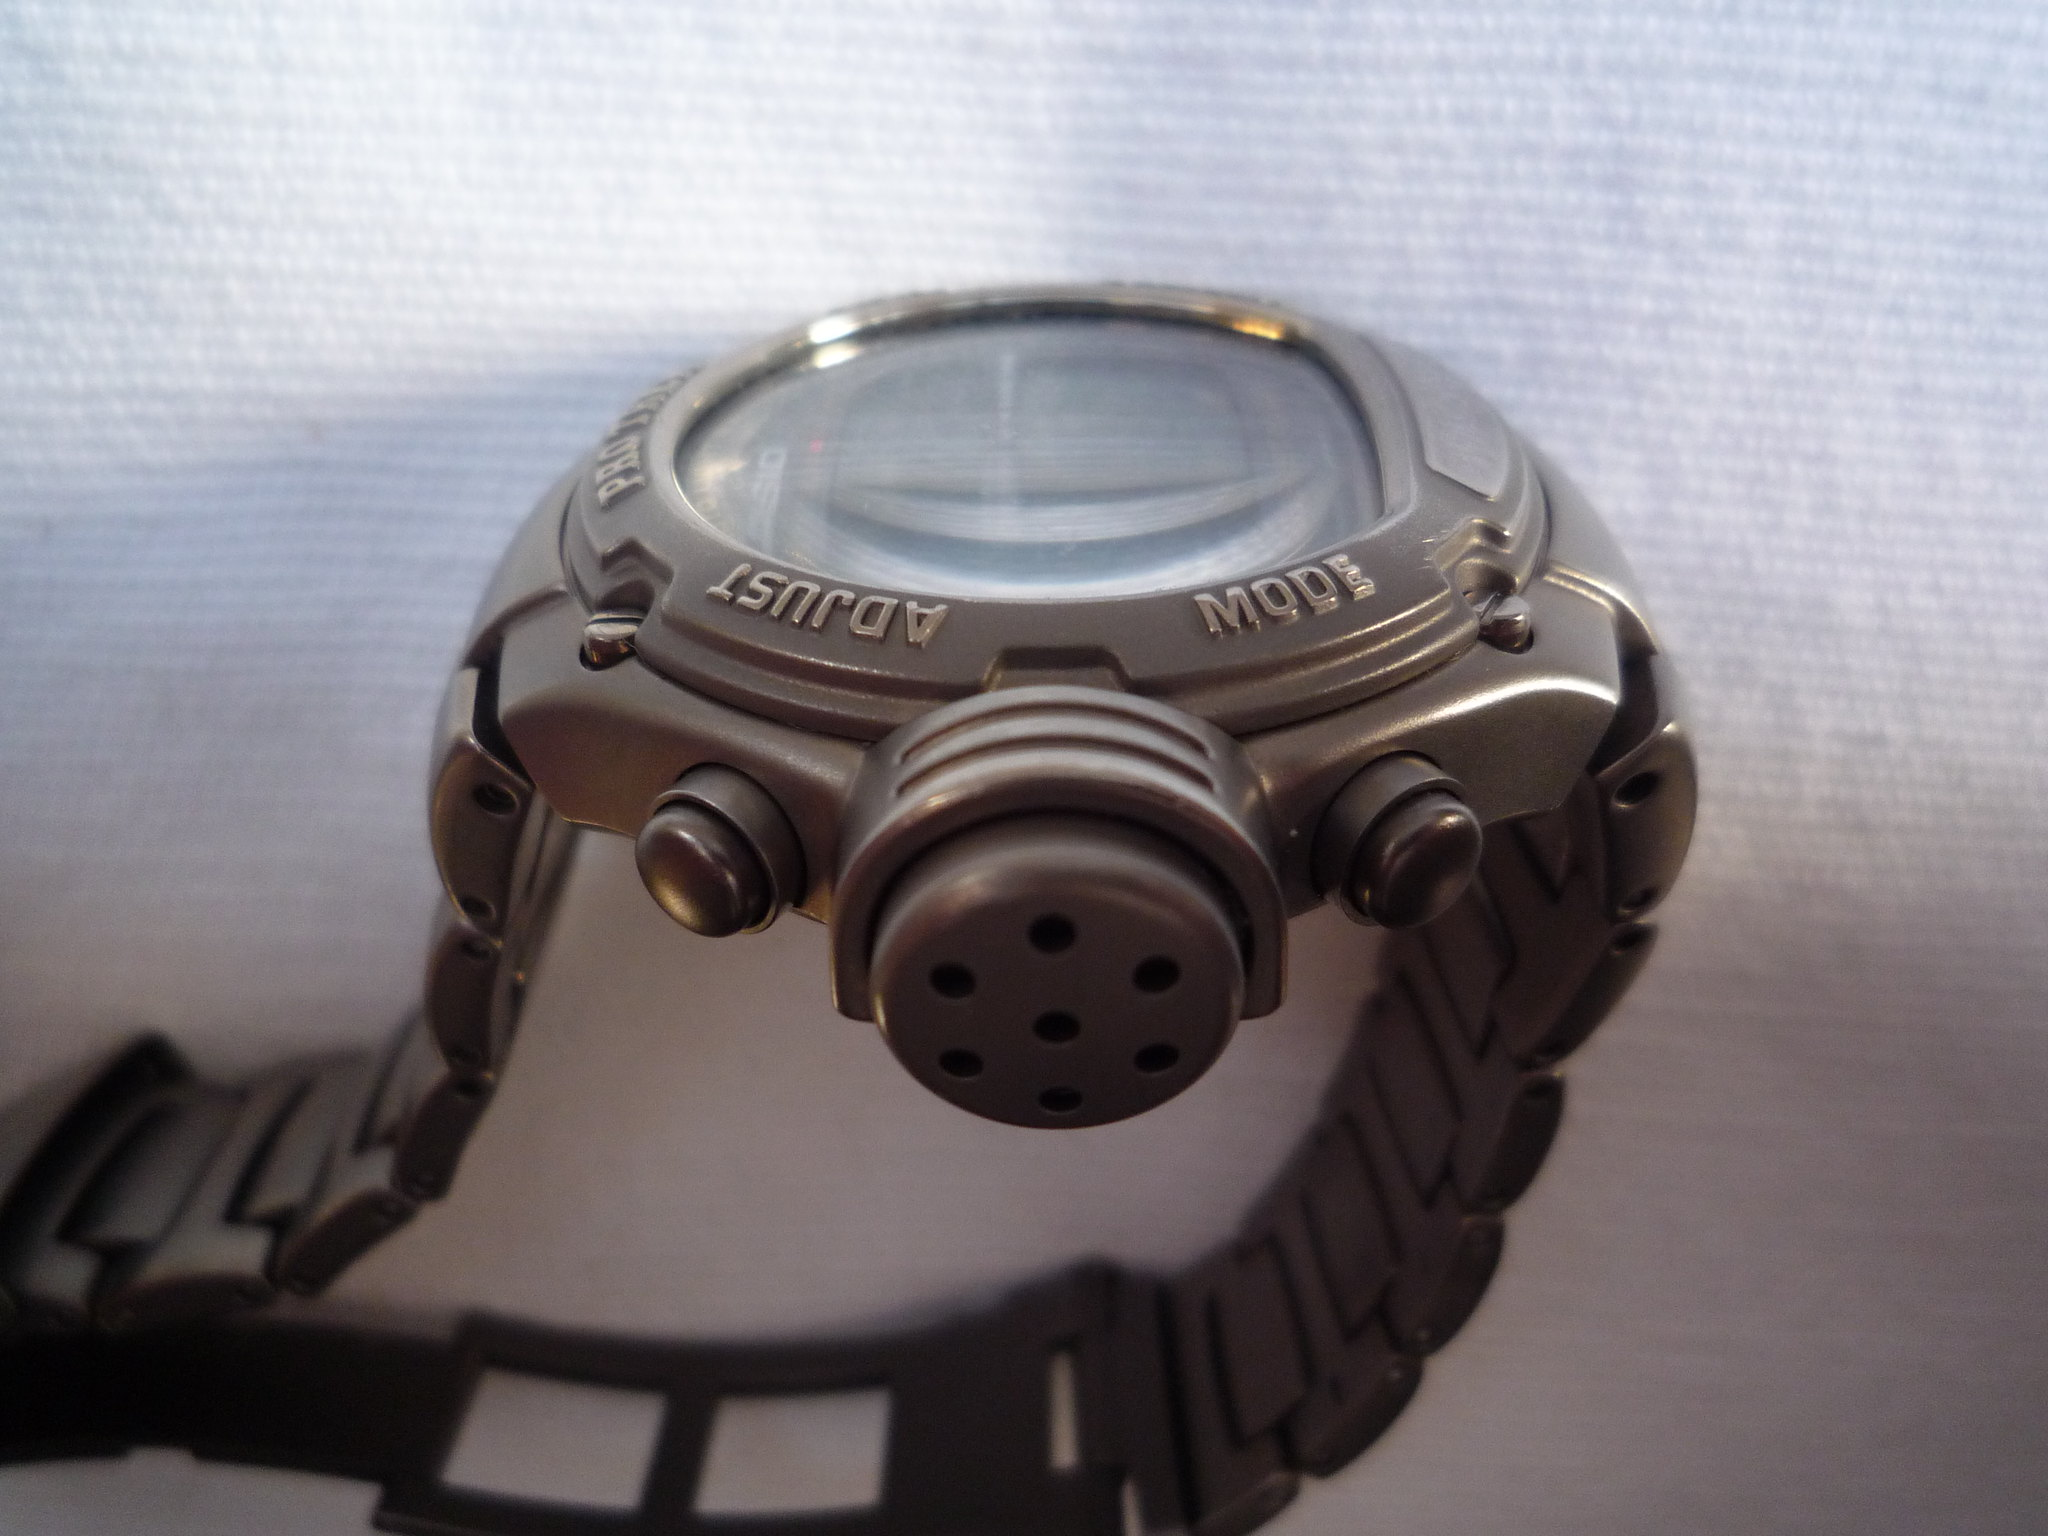 casio dw abc photo fashion g fake carousell watches men star gshock s on p shock